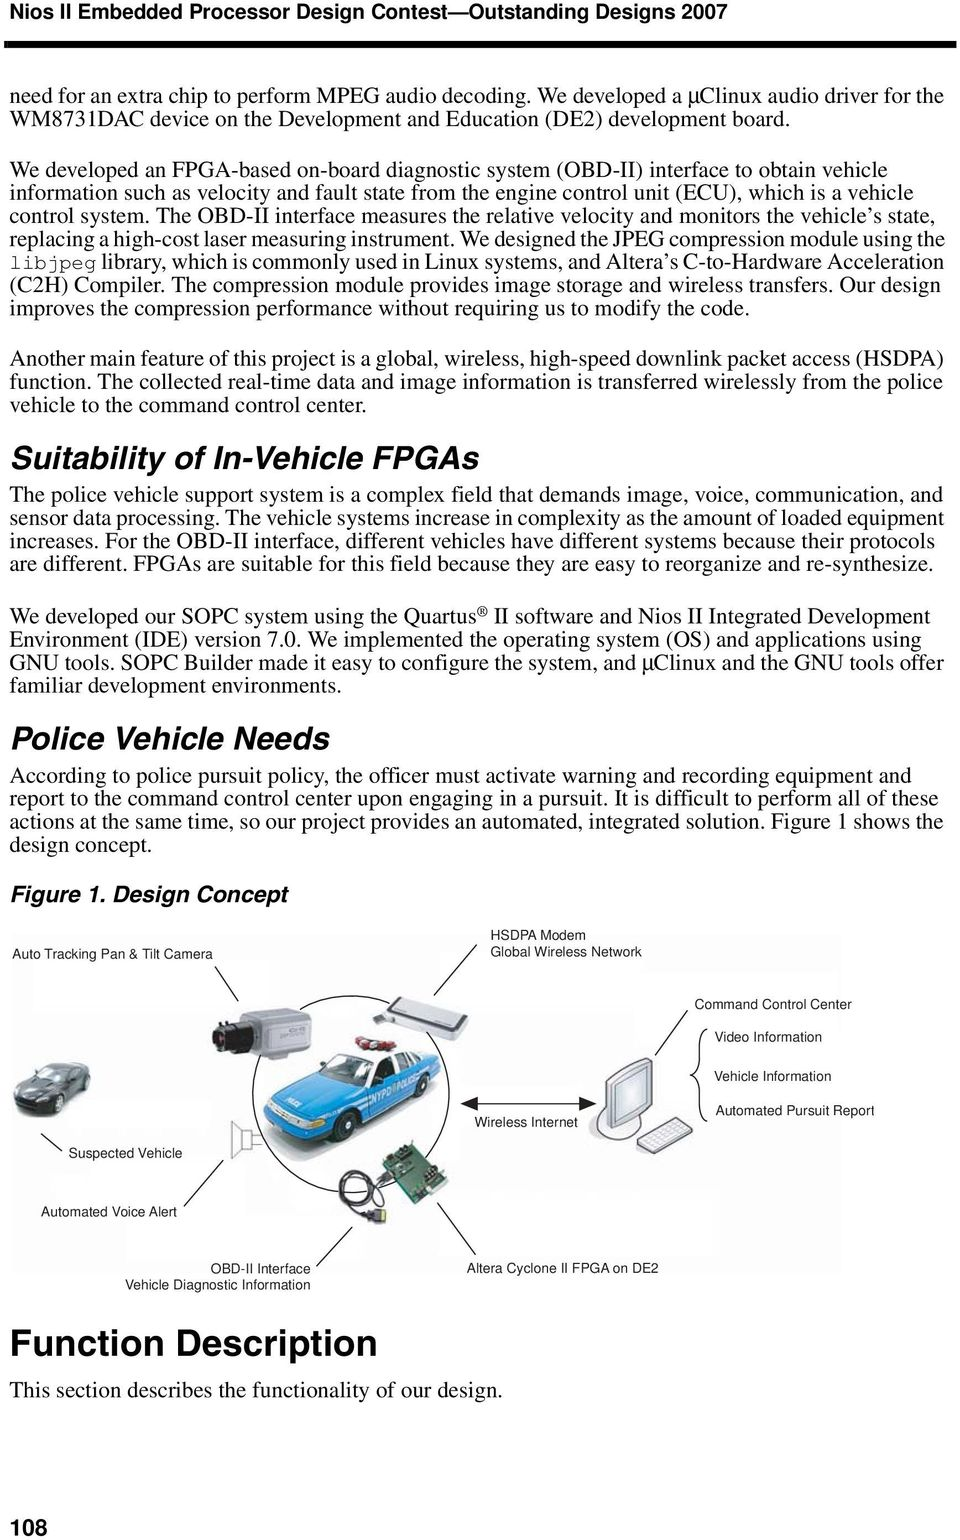 We developed an FPGA-based on-board diagnostic system (OBD-II) interface to obtain vehicle information such as velocity and fault state from the engine control unit (ECU), which is a vehicle control